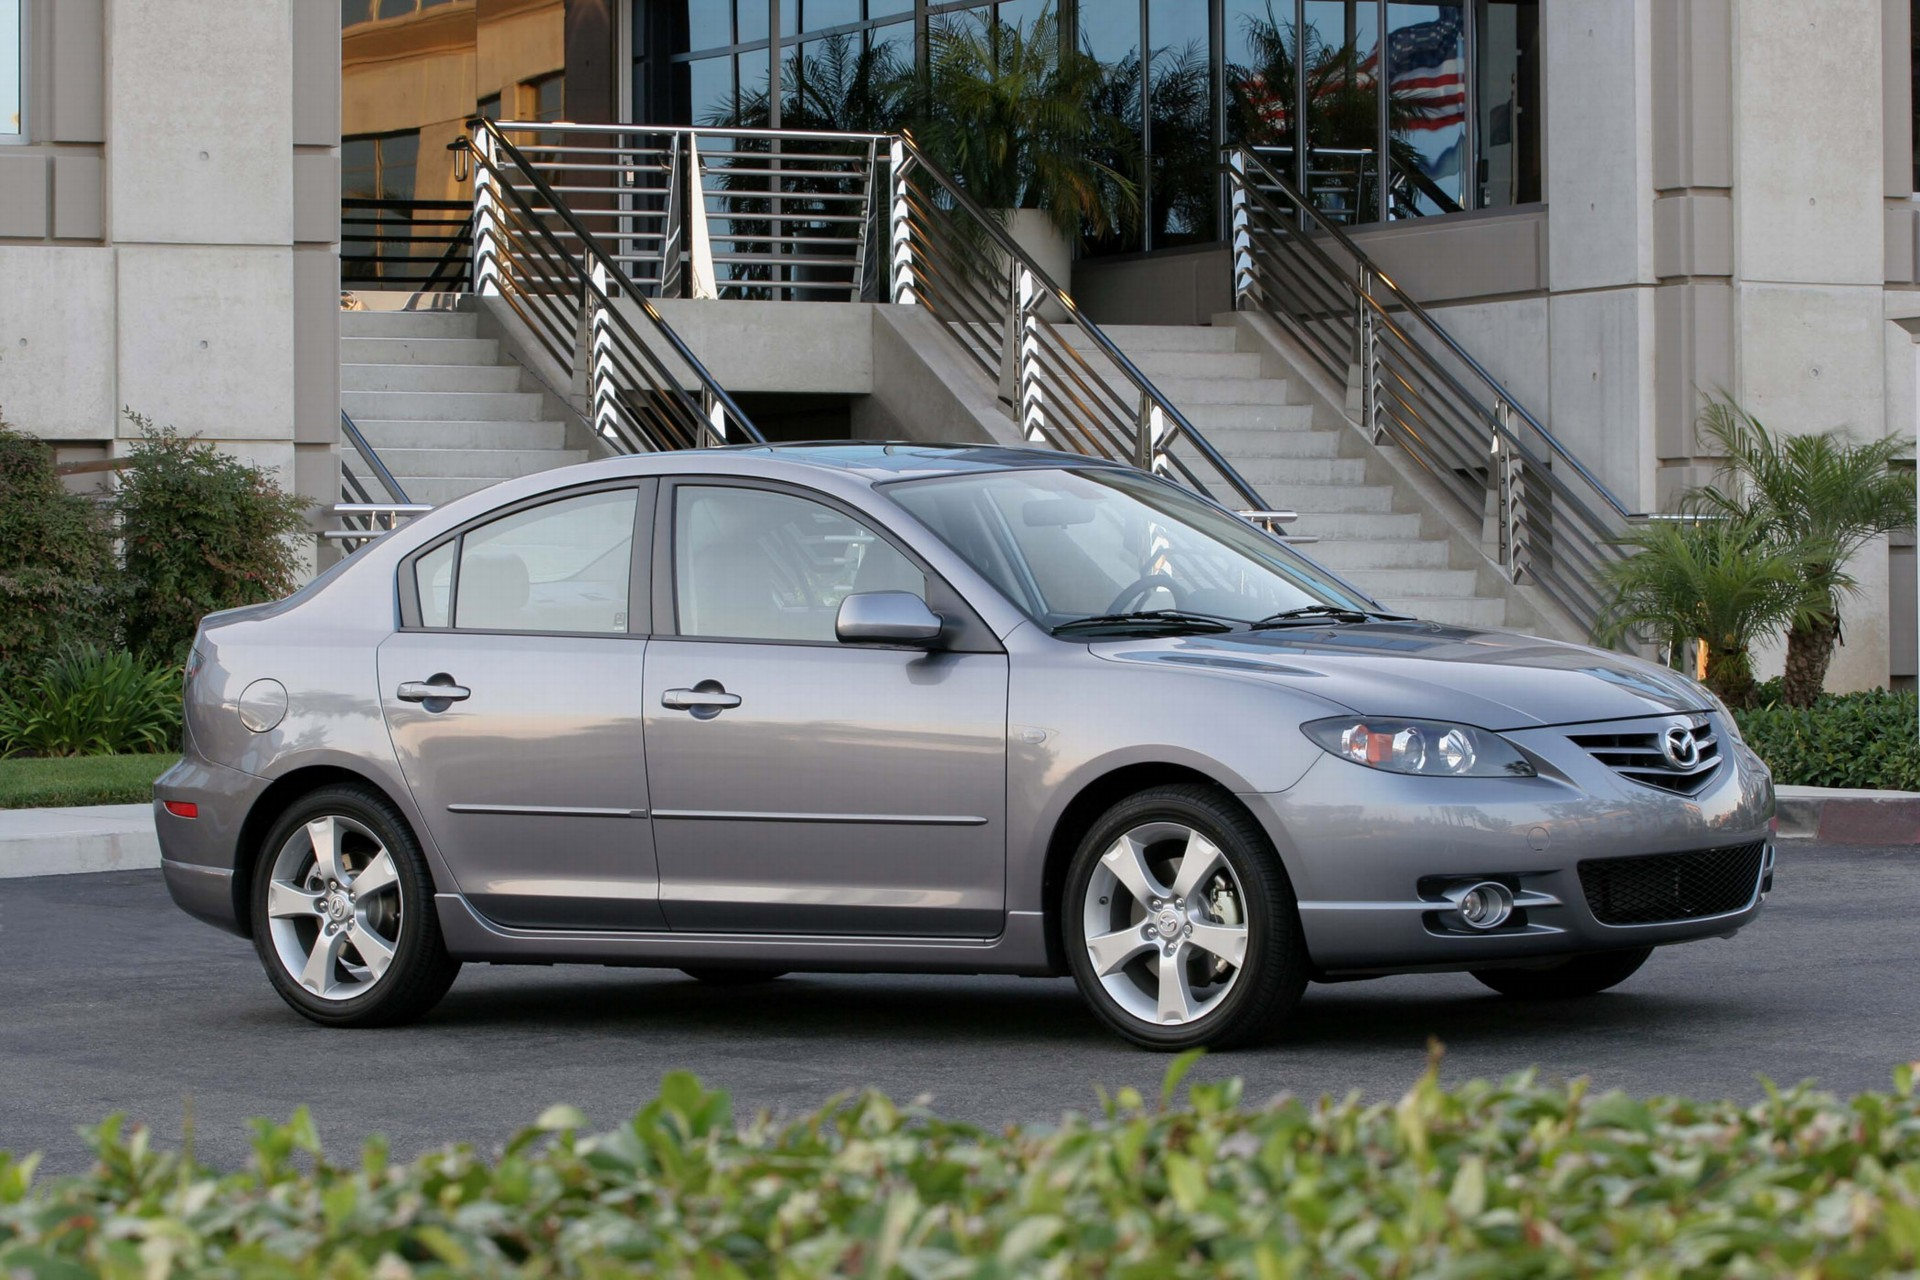 2007 mazda 3 technical specifications and data engine dimensions and mechanical details. Black Bedroom Furniture Sets. Home Design Ideas